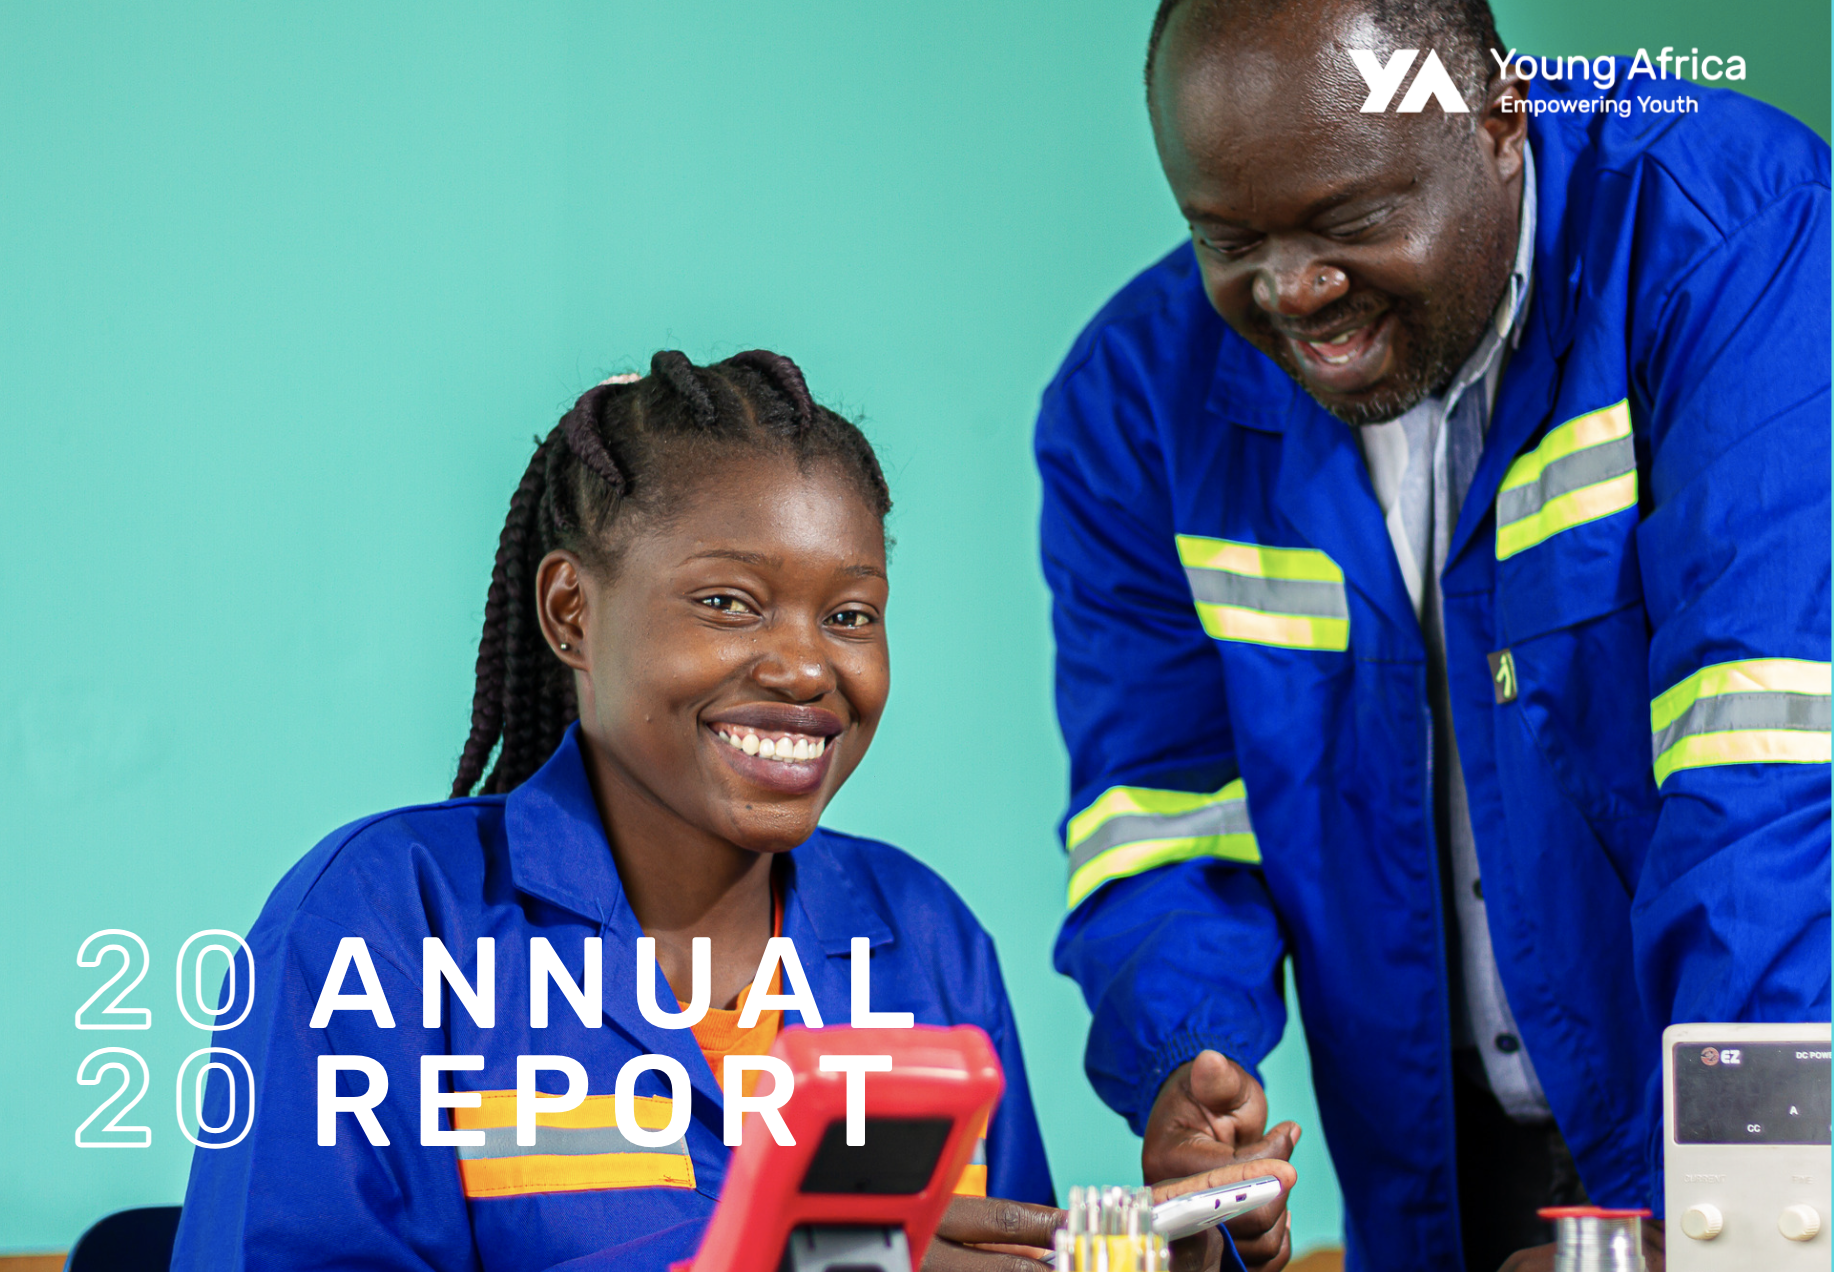 The Young Africa Annual Report 2020 Is Out Now